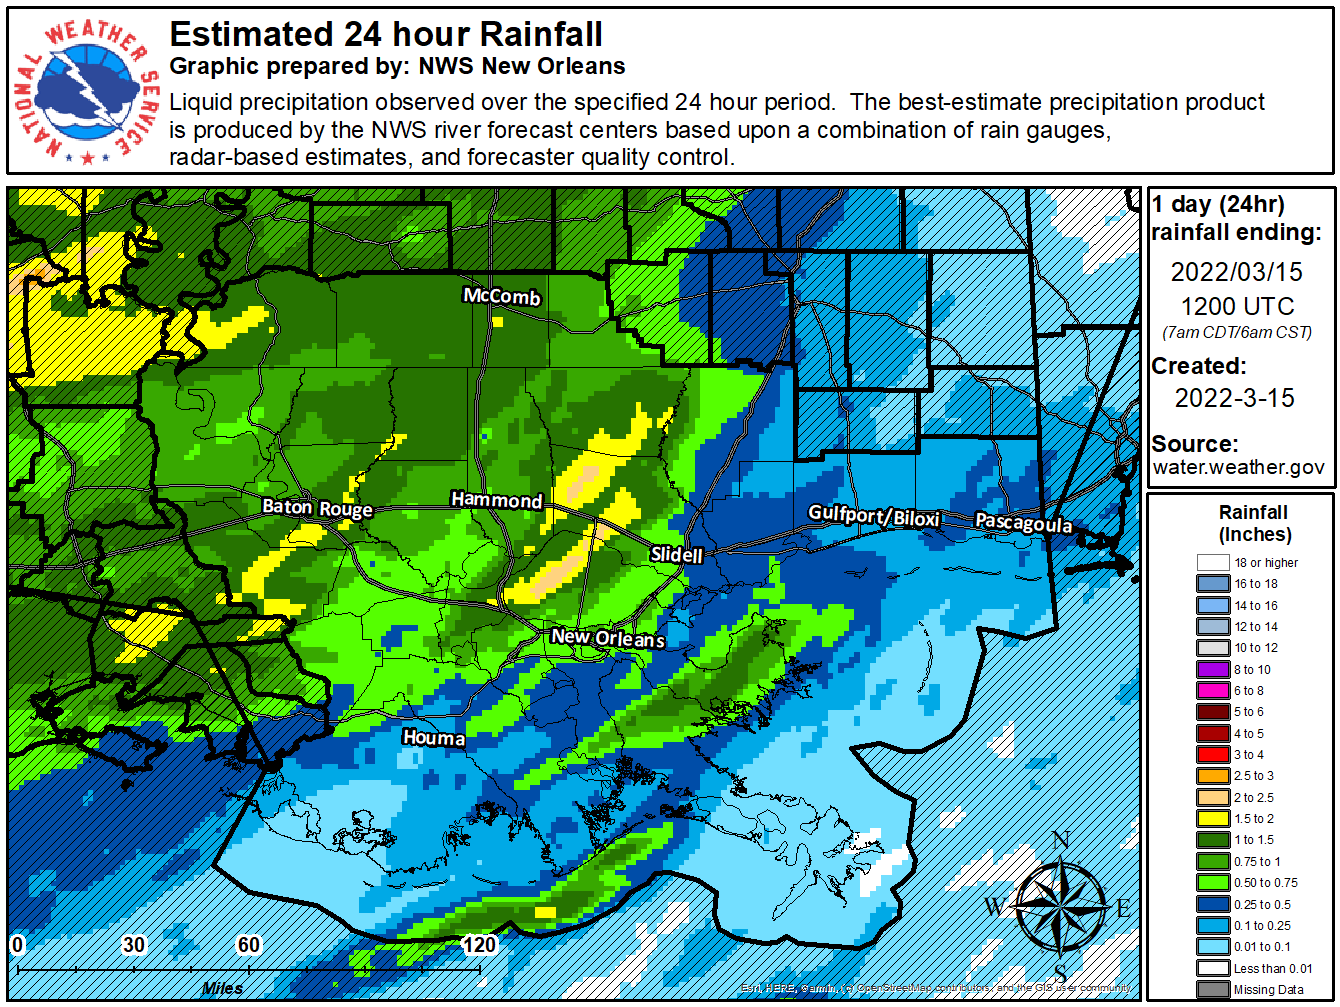 Image of 24-hr rainfall for the WFO LIX service area